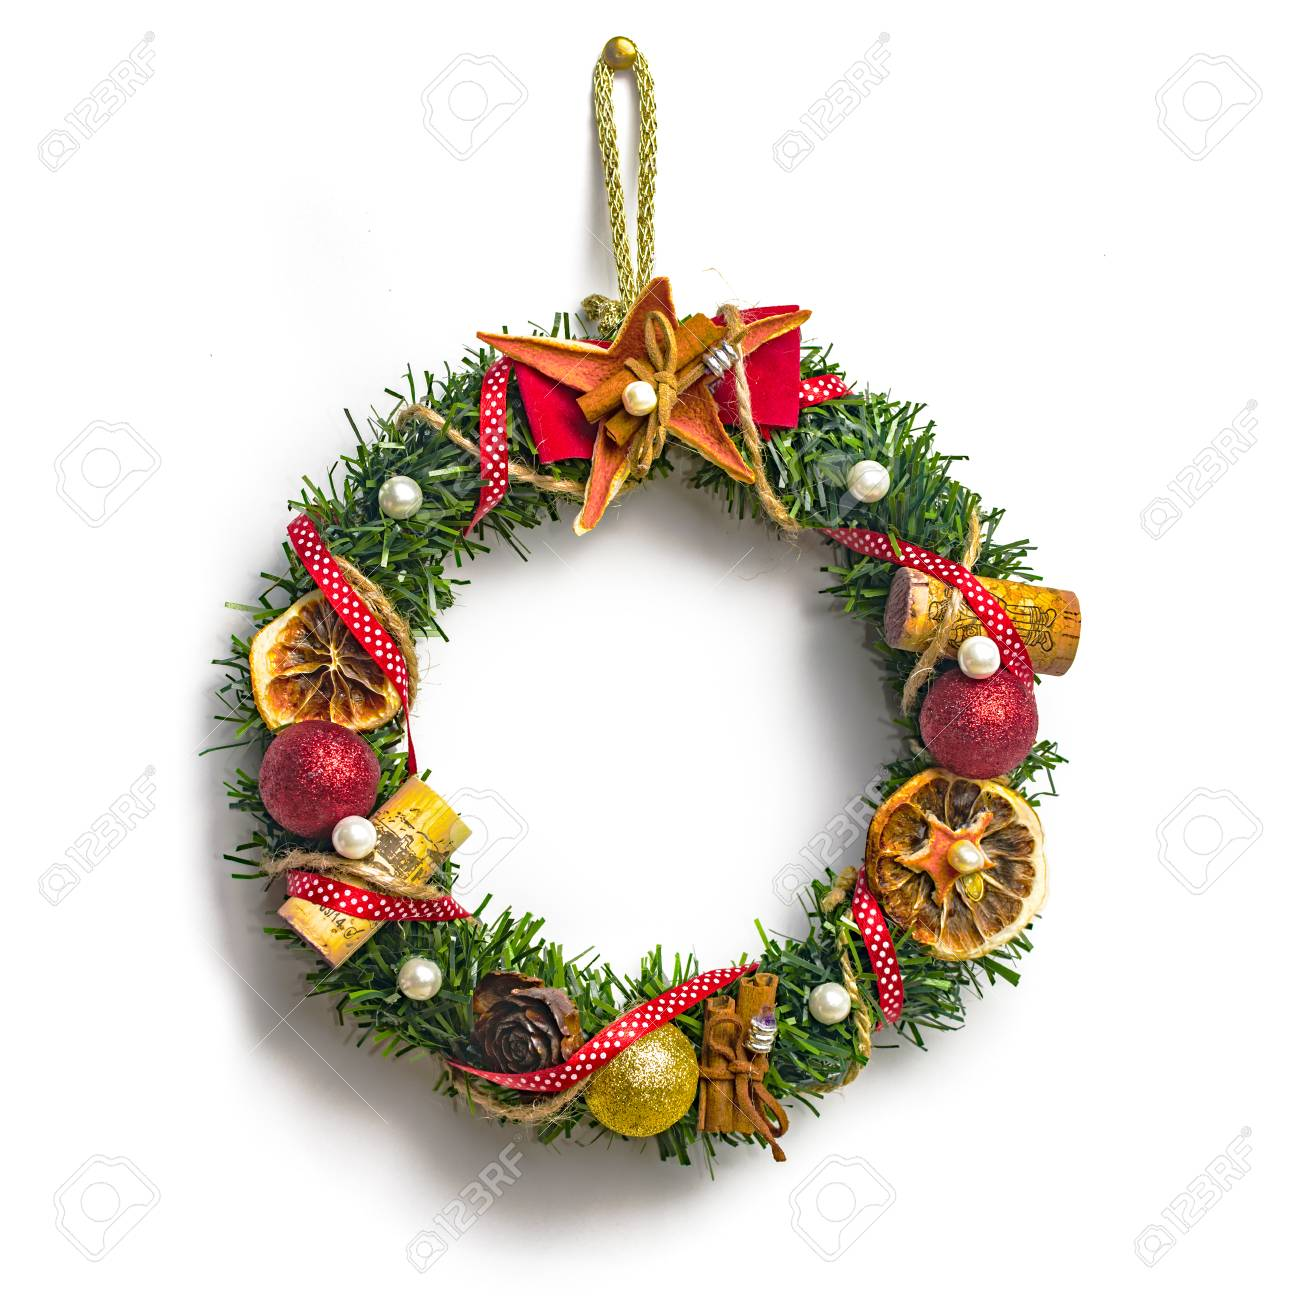 Christmas Wreath With Decorations Isolated On White Background Stock ...